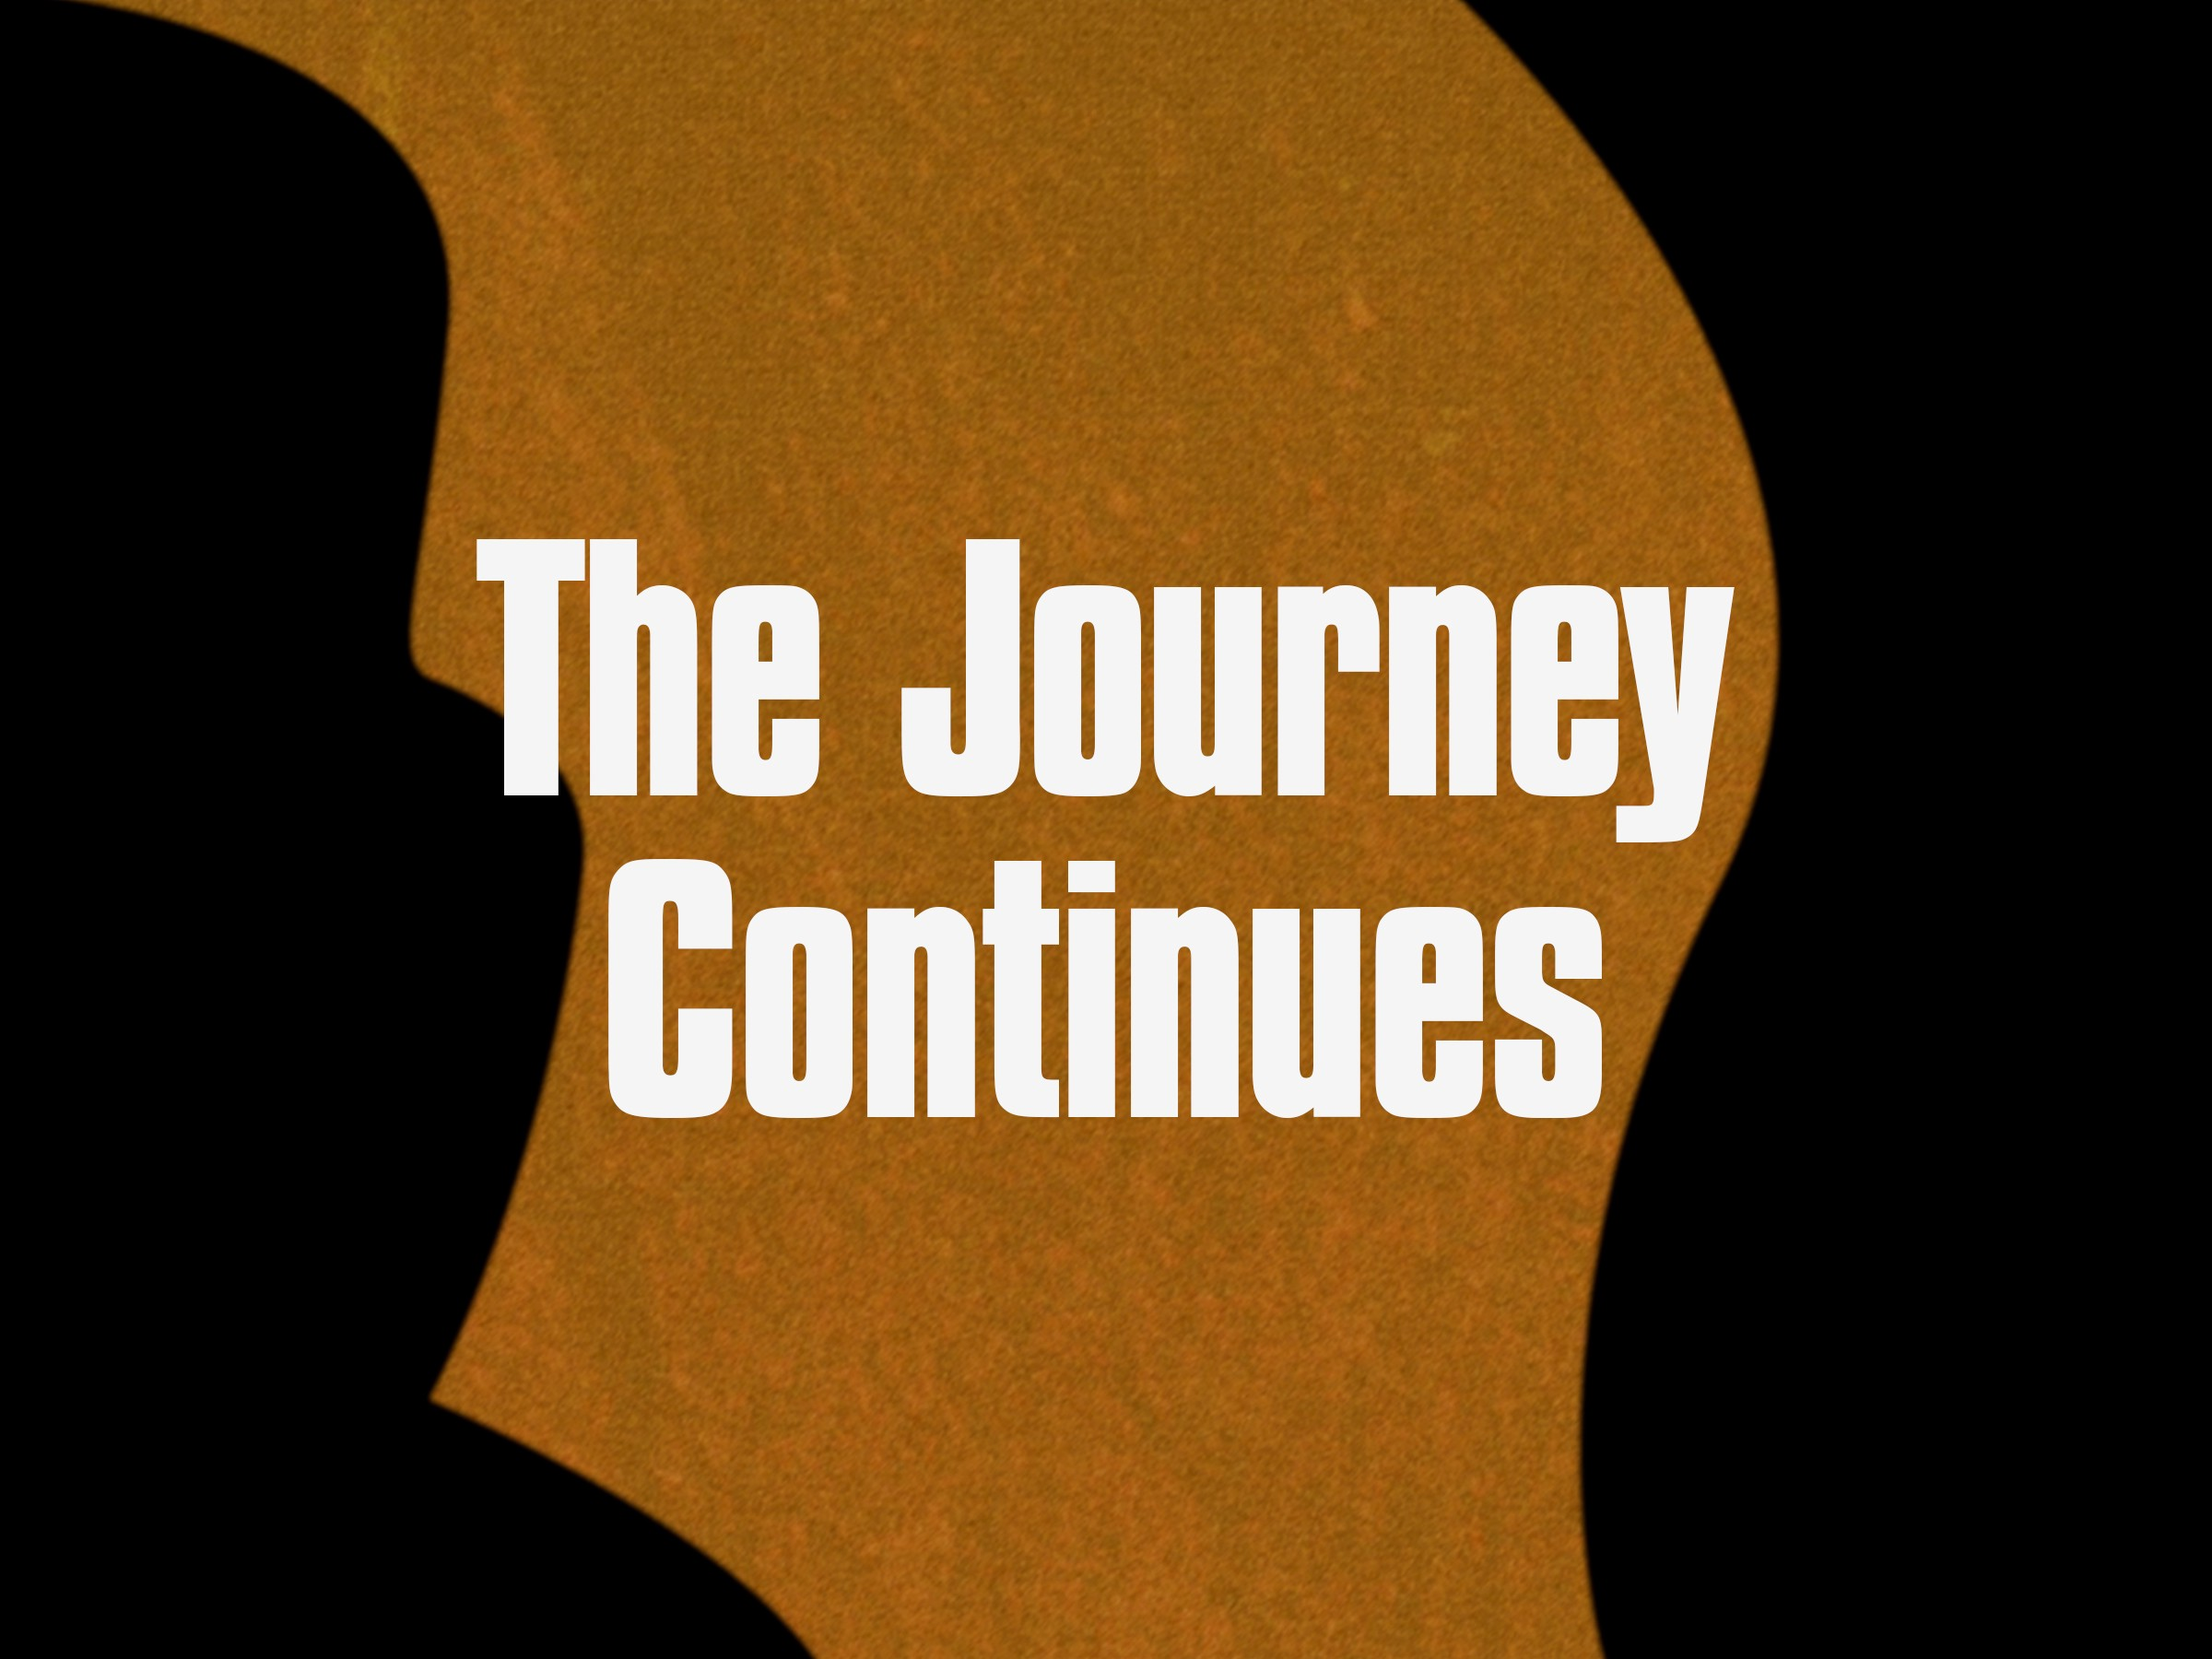 The Journey Continues